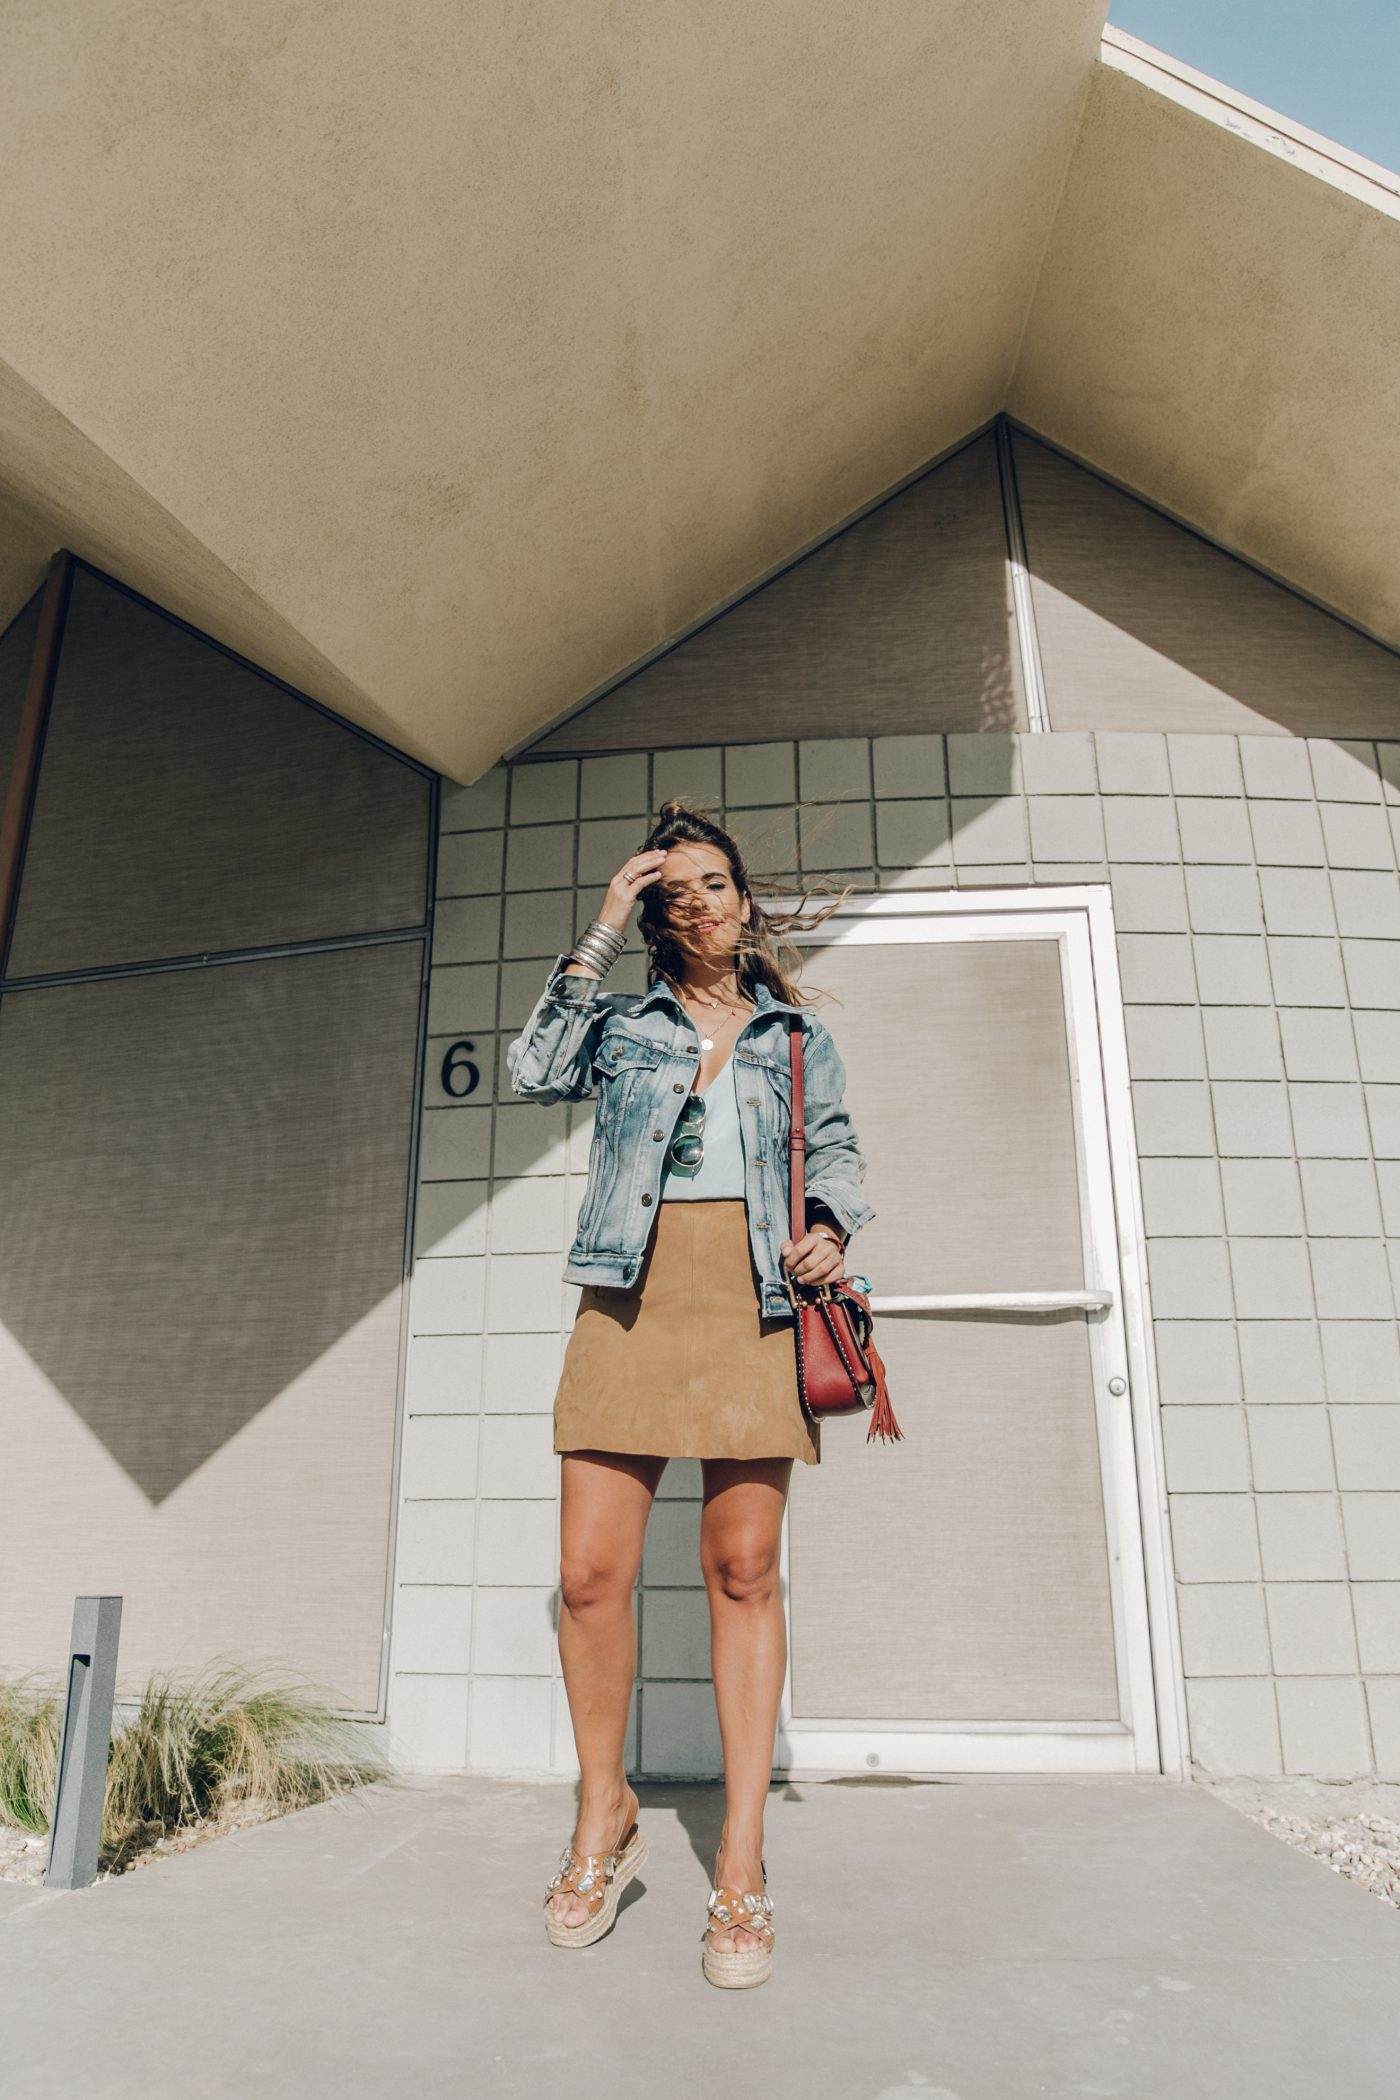 Denim_Jacket-Saint_Laurent-Chloe_Top-Suede_Skirt-Chloe_Hudson_Bag-Espadrilles-Coachella-Palm_Springs-Outfit-Collage_Vintage-15